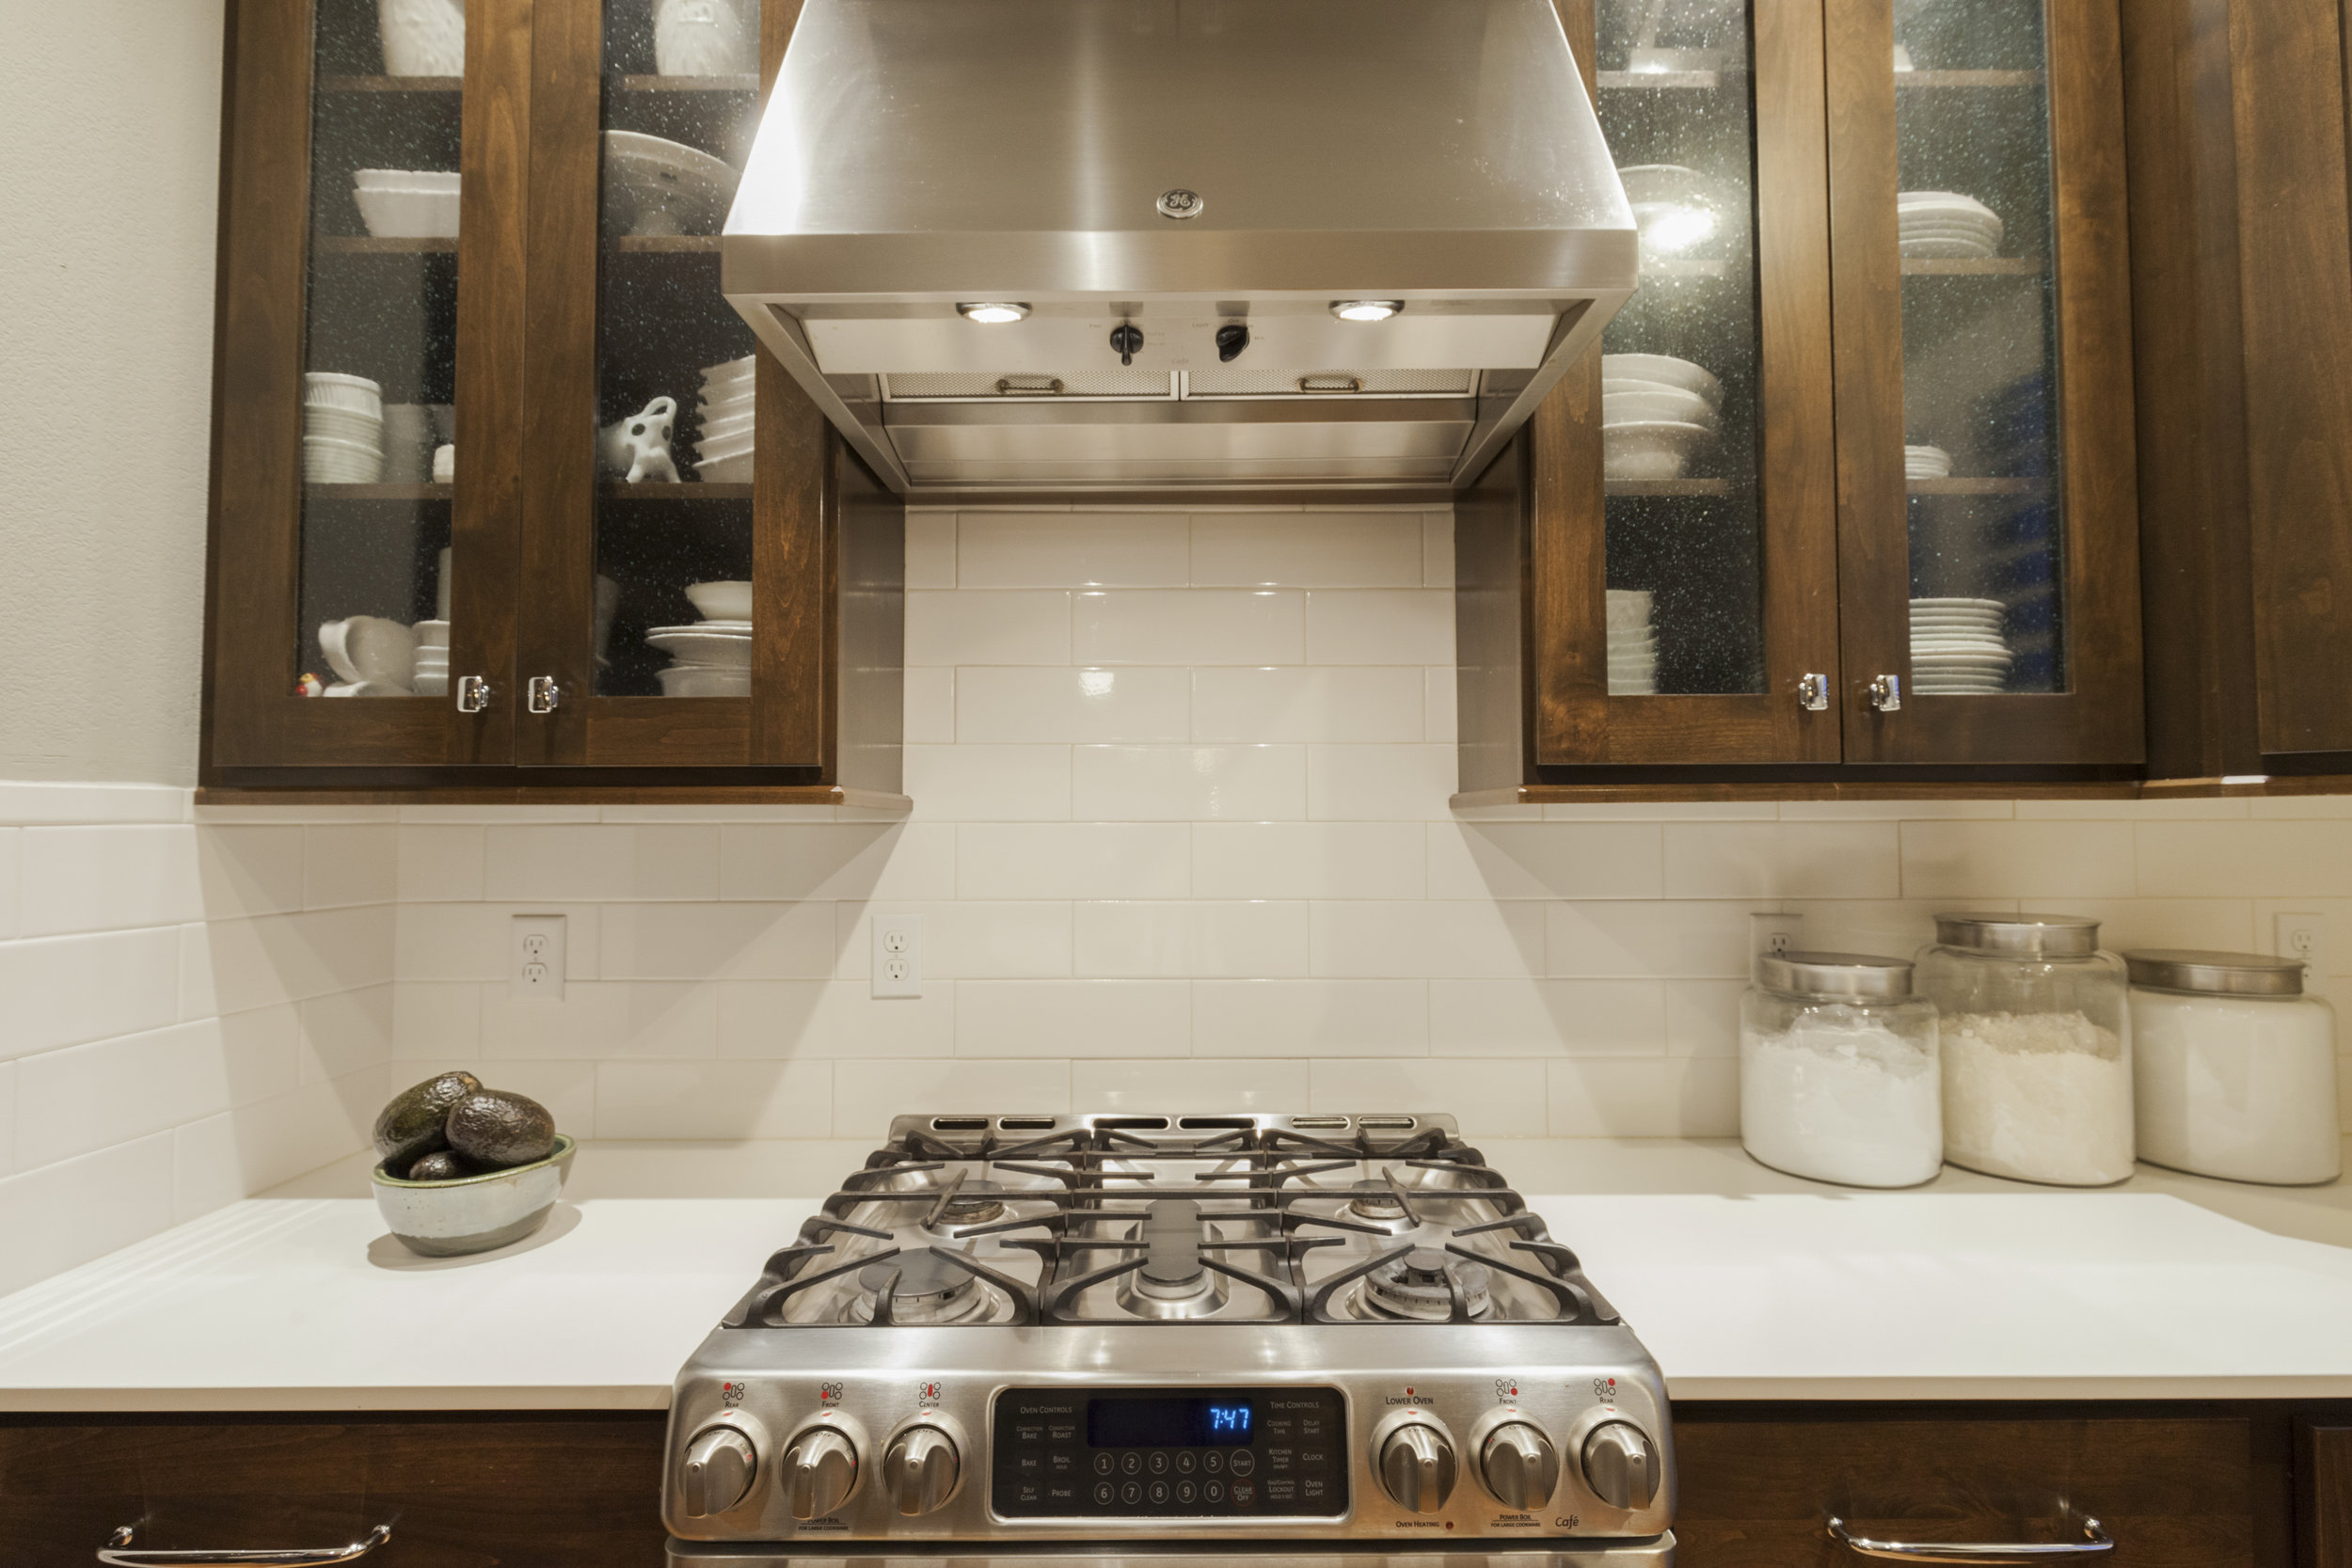 Tharp Cabinetry, quartz countertops, new backsplash, top of the line SS appliances!